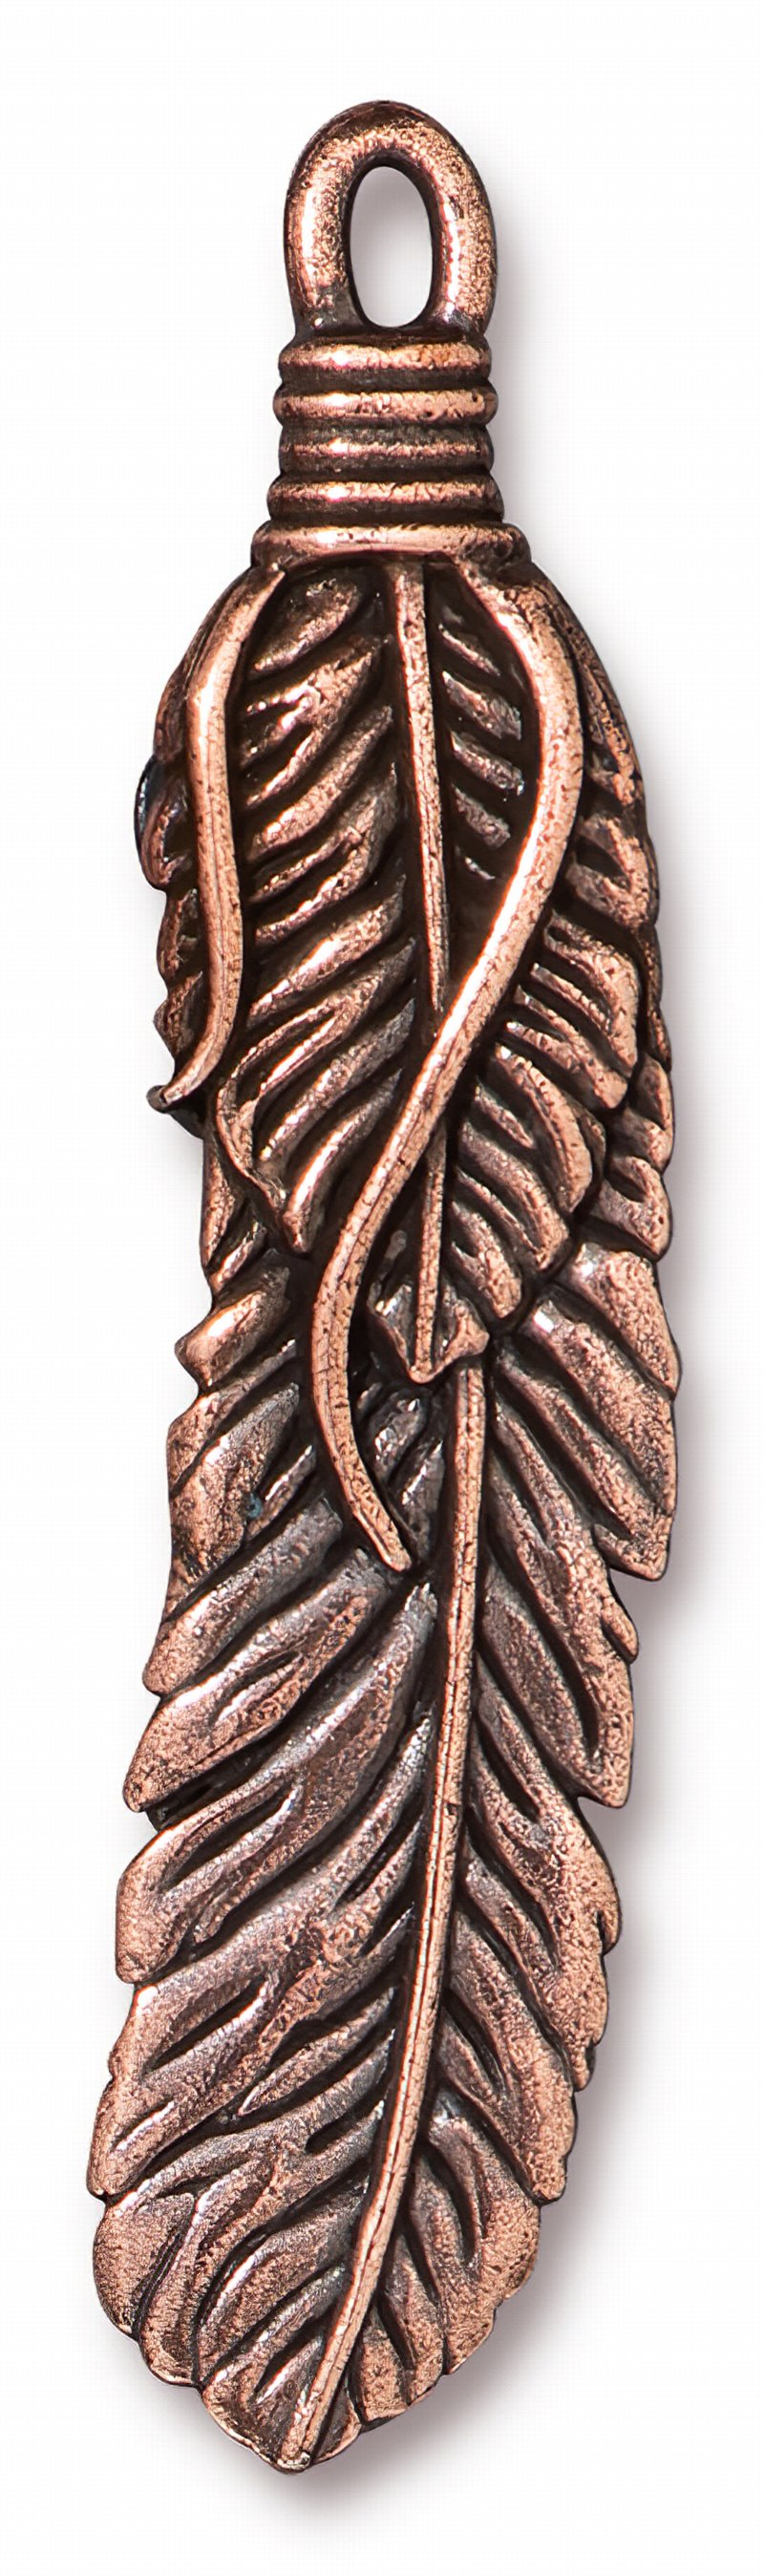 s62694 Metal Pendant - 2in Wrapped Feather - Antiqued Copper